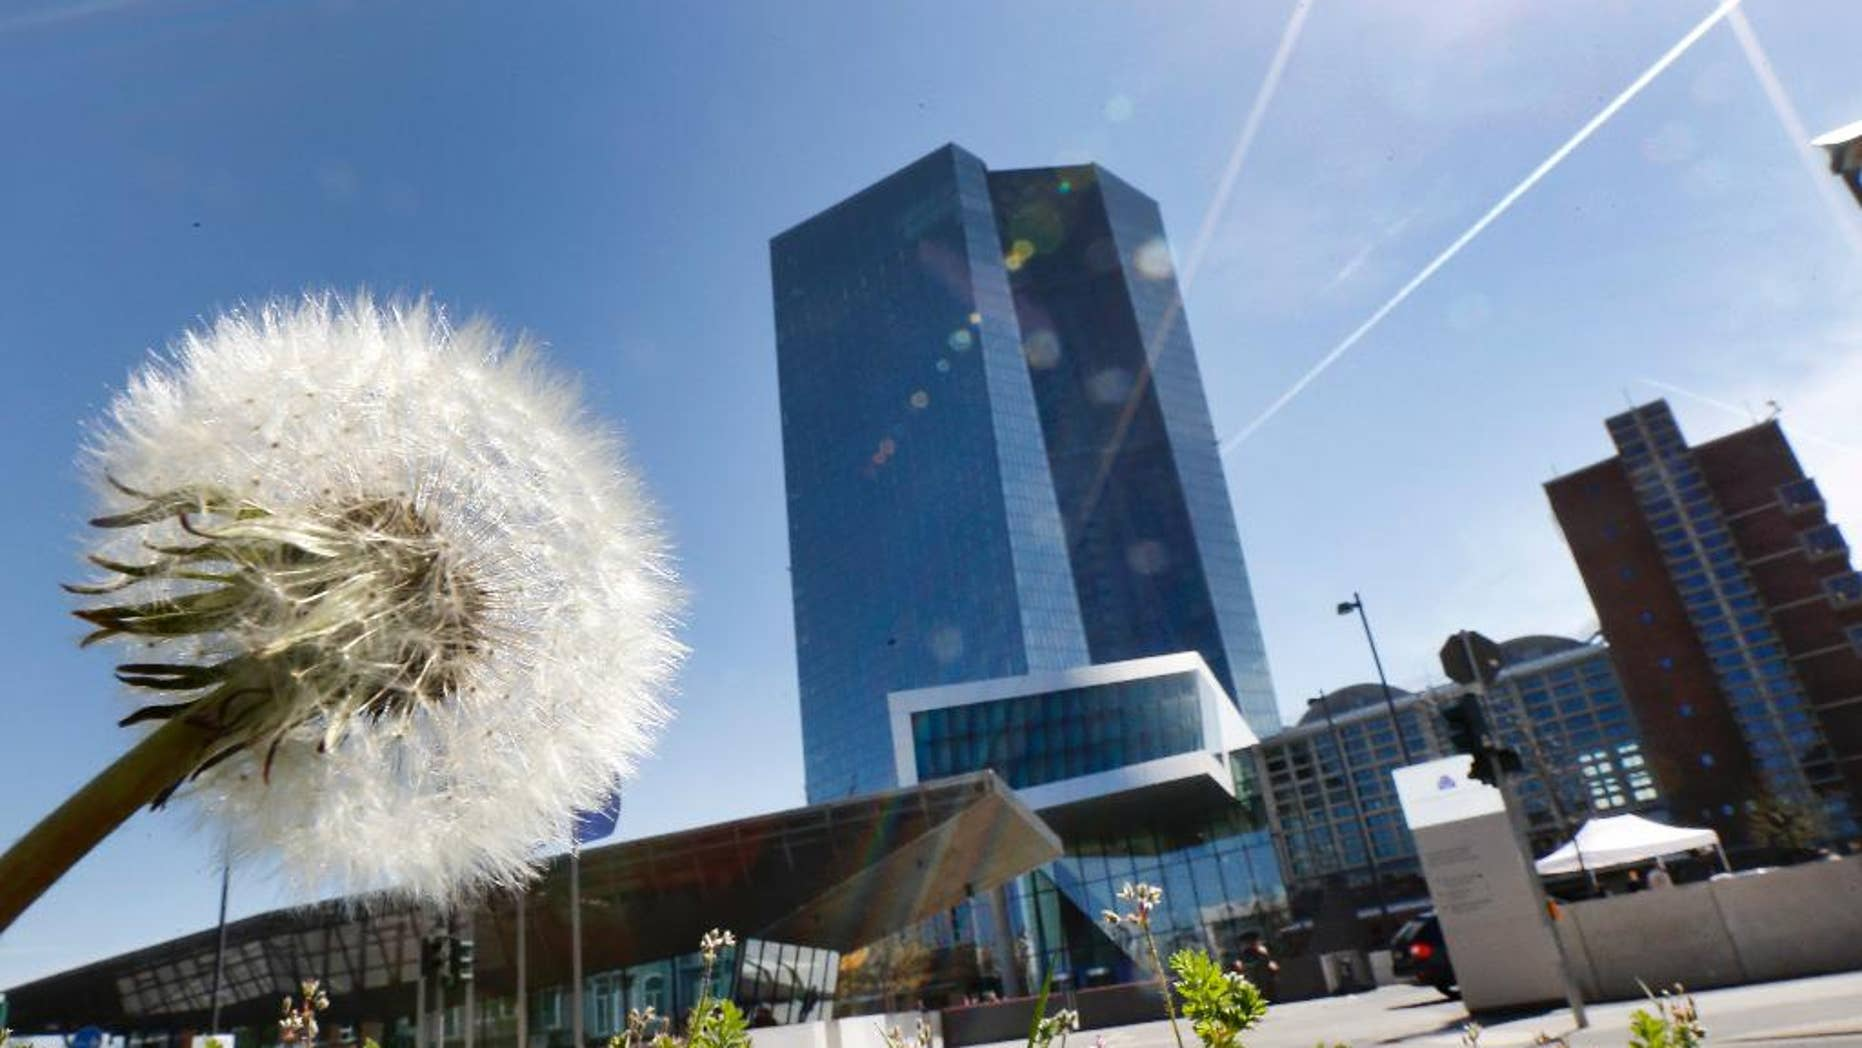 A dandelion stands in front of the headquarters of the European Central Bank in Frankfurt, Germany, Thursday, April 21, 2016. The governing council of the ECB meets on Thursday. (AP Photo/Michael Probst)